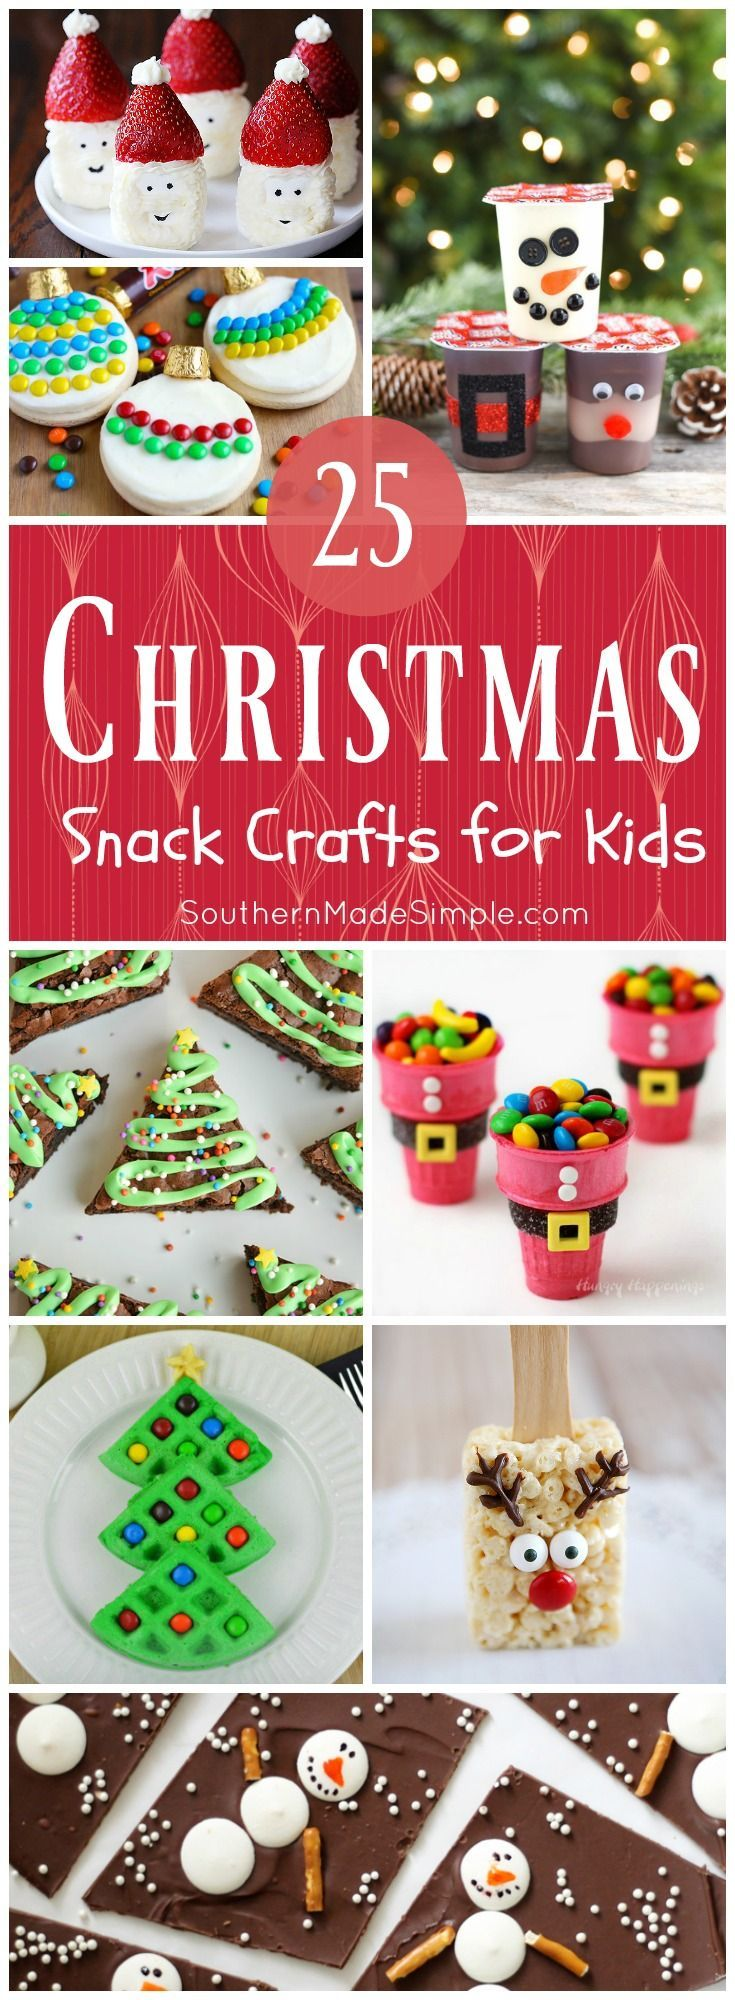 61 best christmas images on pinterest christmas desserts 25 edible christmas crafts for kids forumfinder